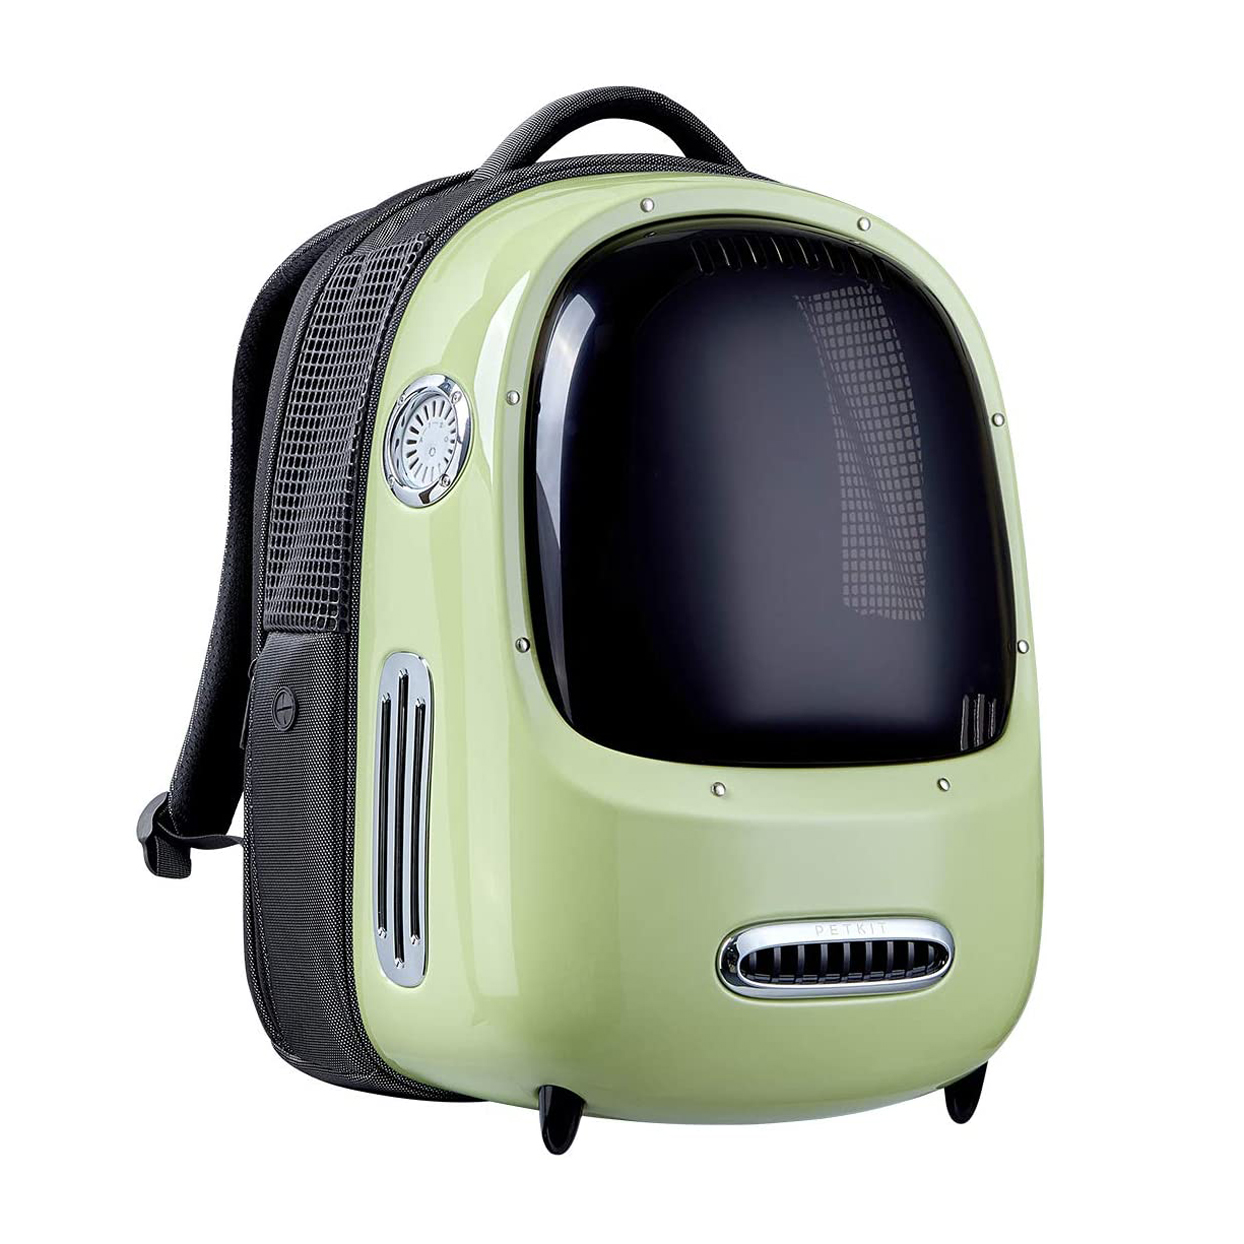 petkit-pet-backpack-carrier-for-cats